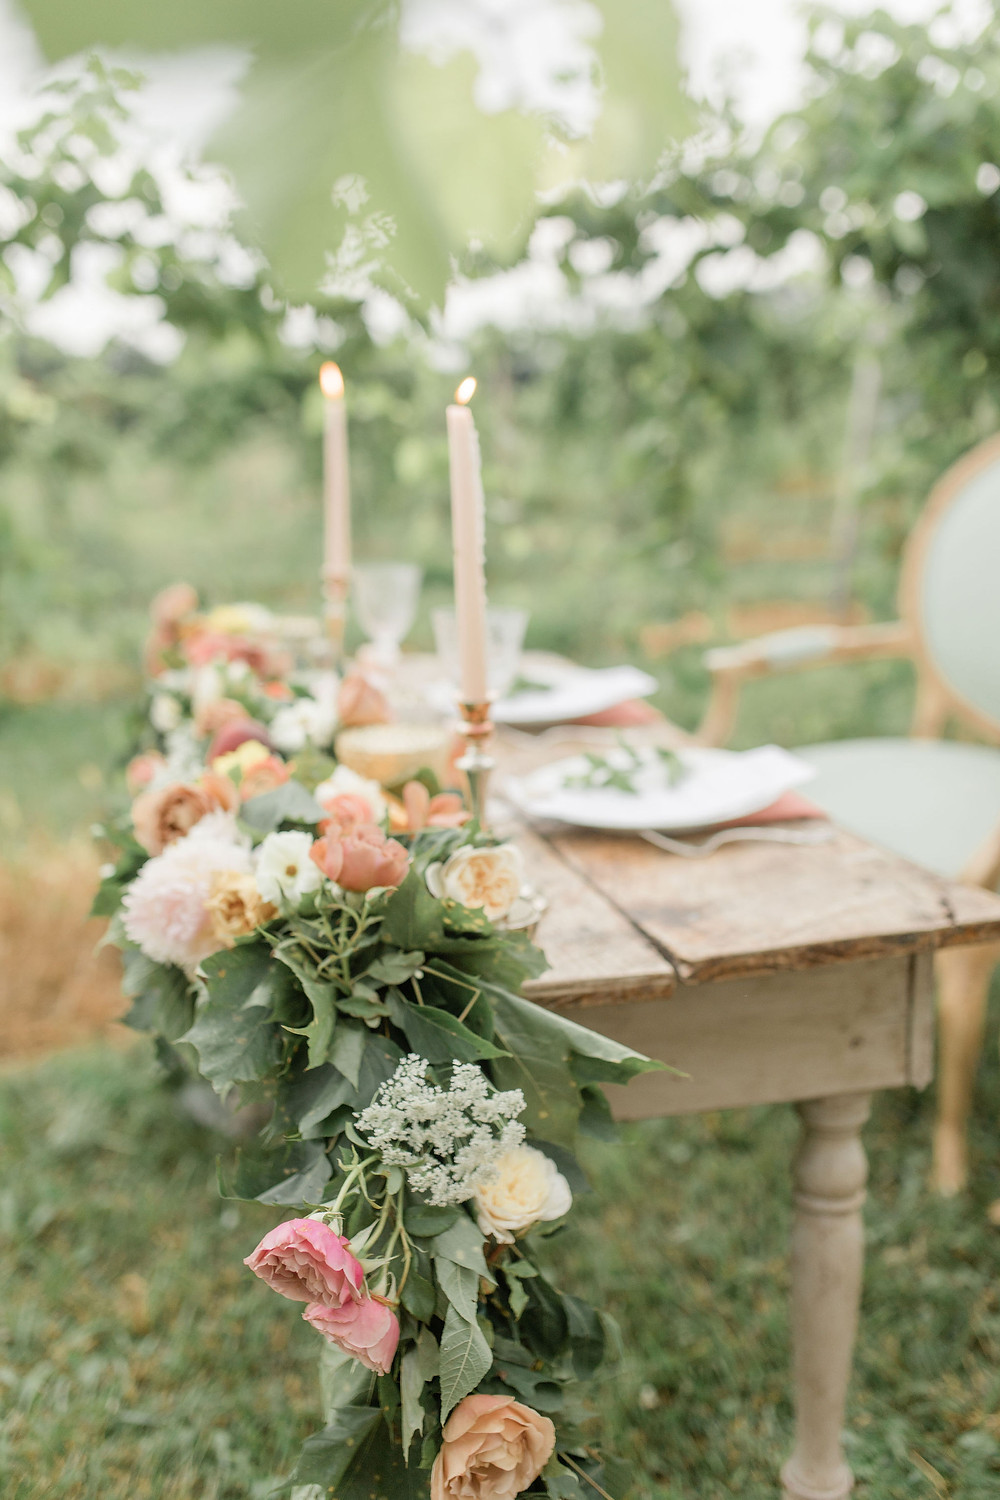 Vintage sweetheart table made from reclaimed wood is a perfect way to create a private seating area for the couple on wedding day!